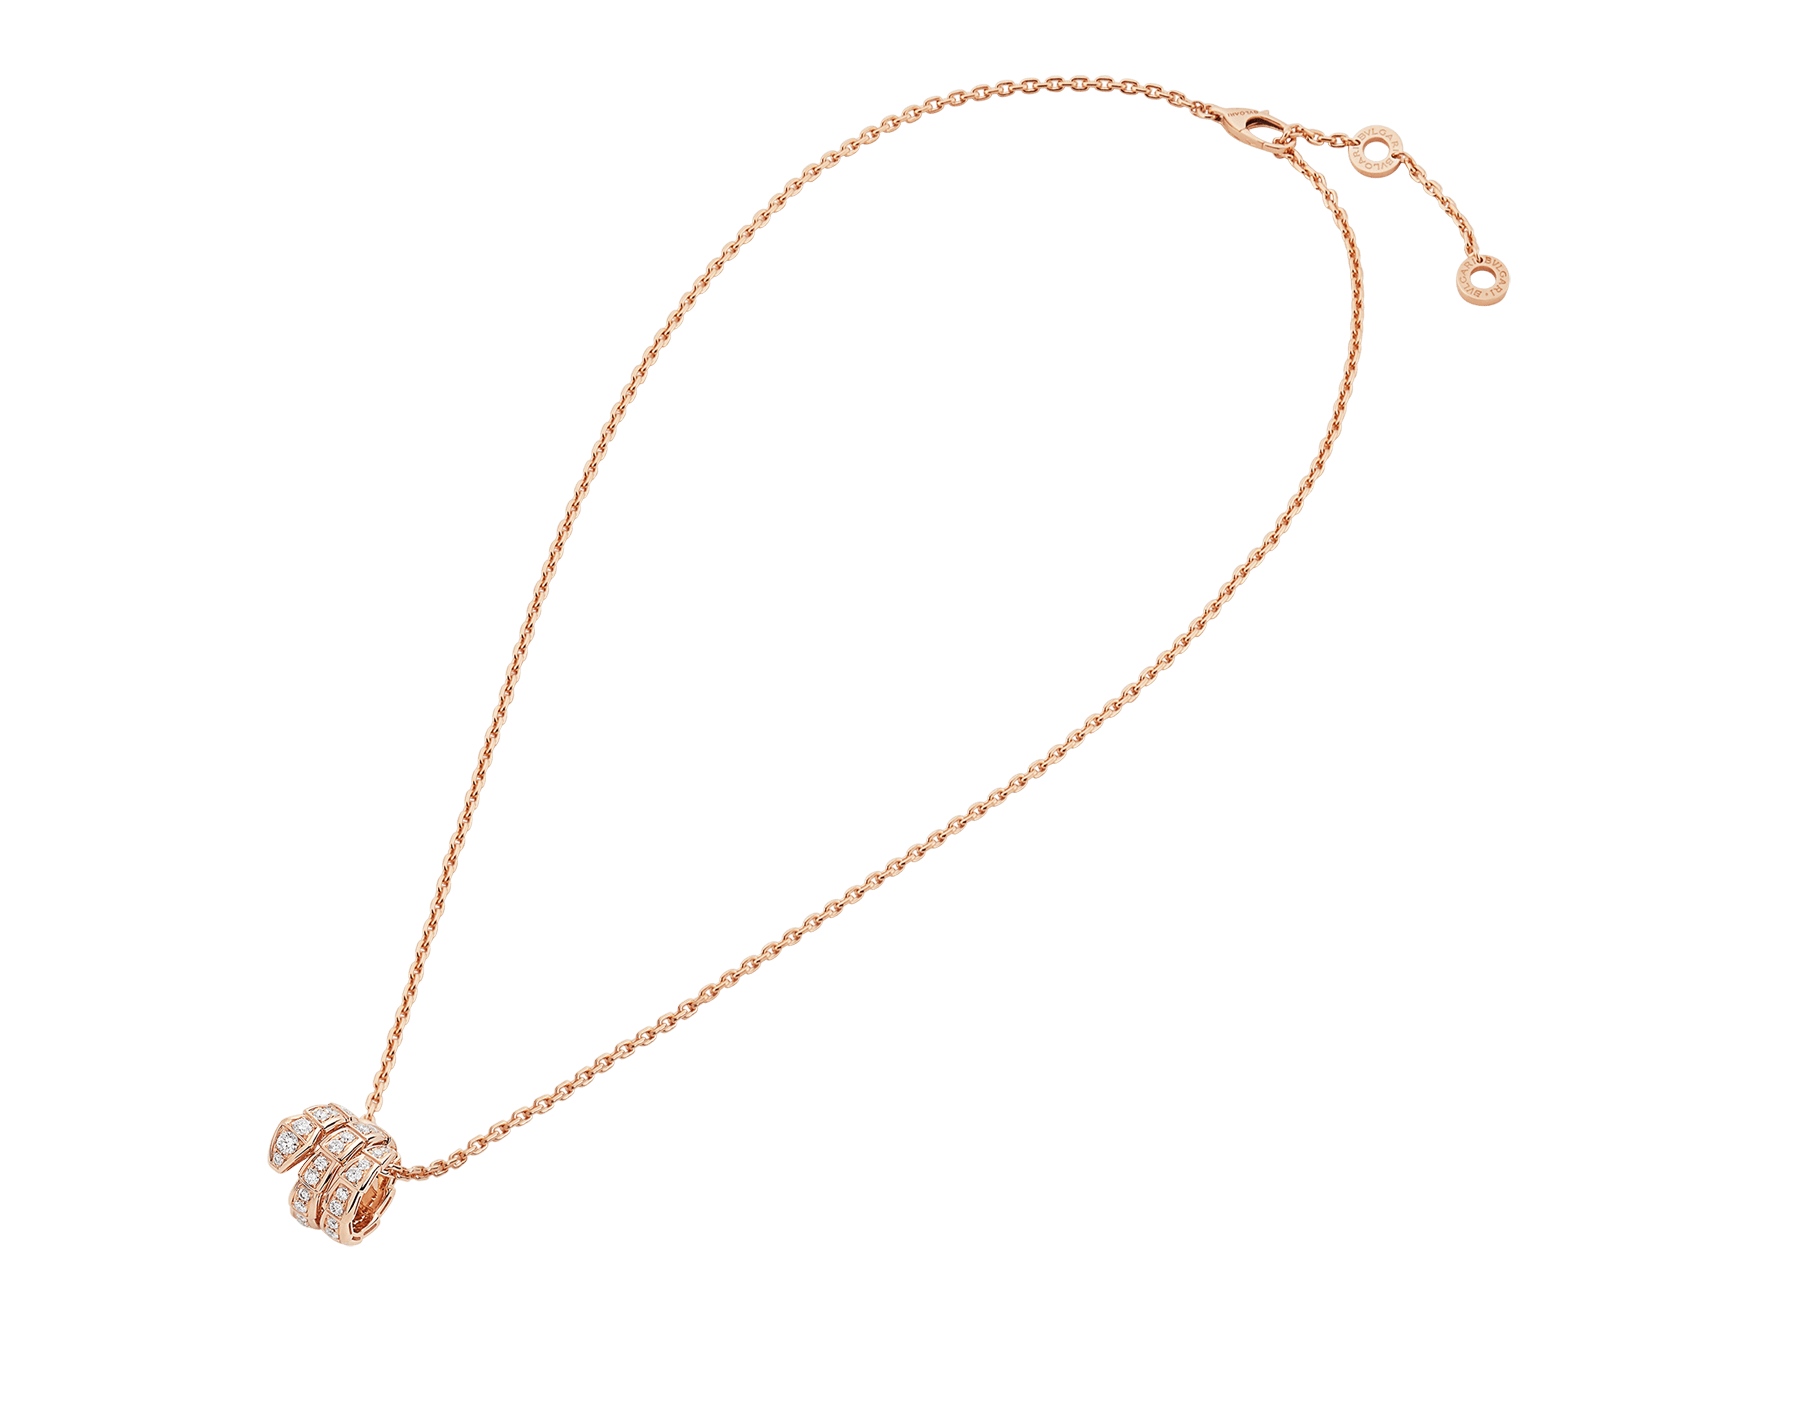 Serpenti Viper pendant necklace in 18 kt rose gold set with pavé diamonds 357795 image 2